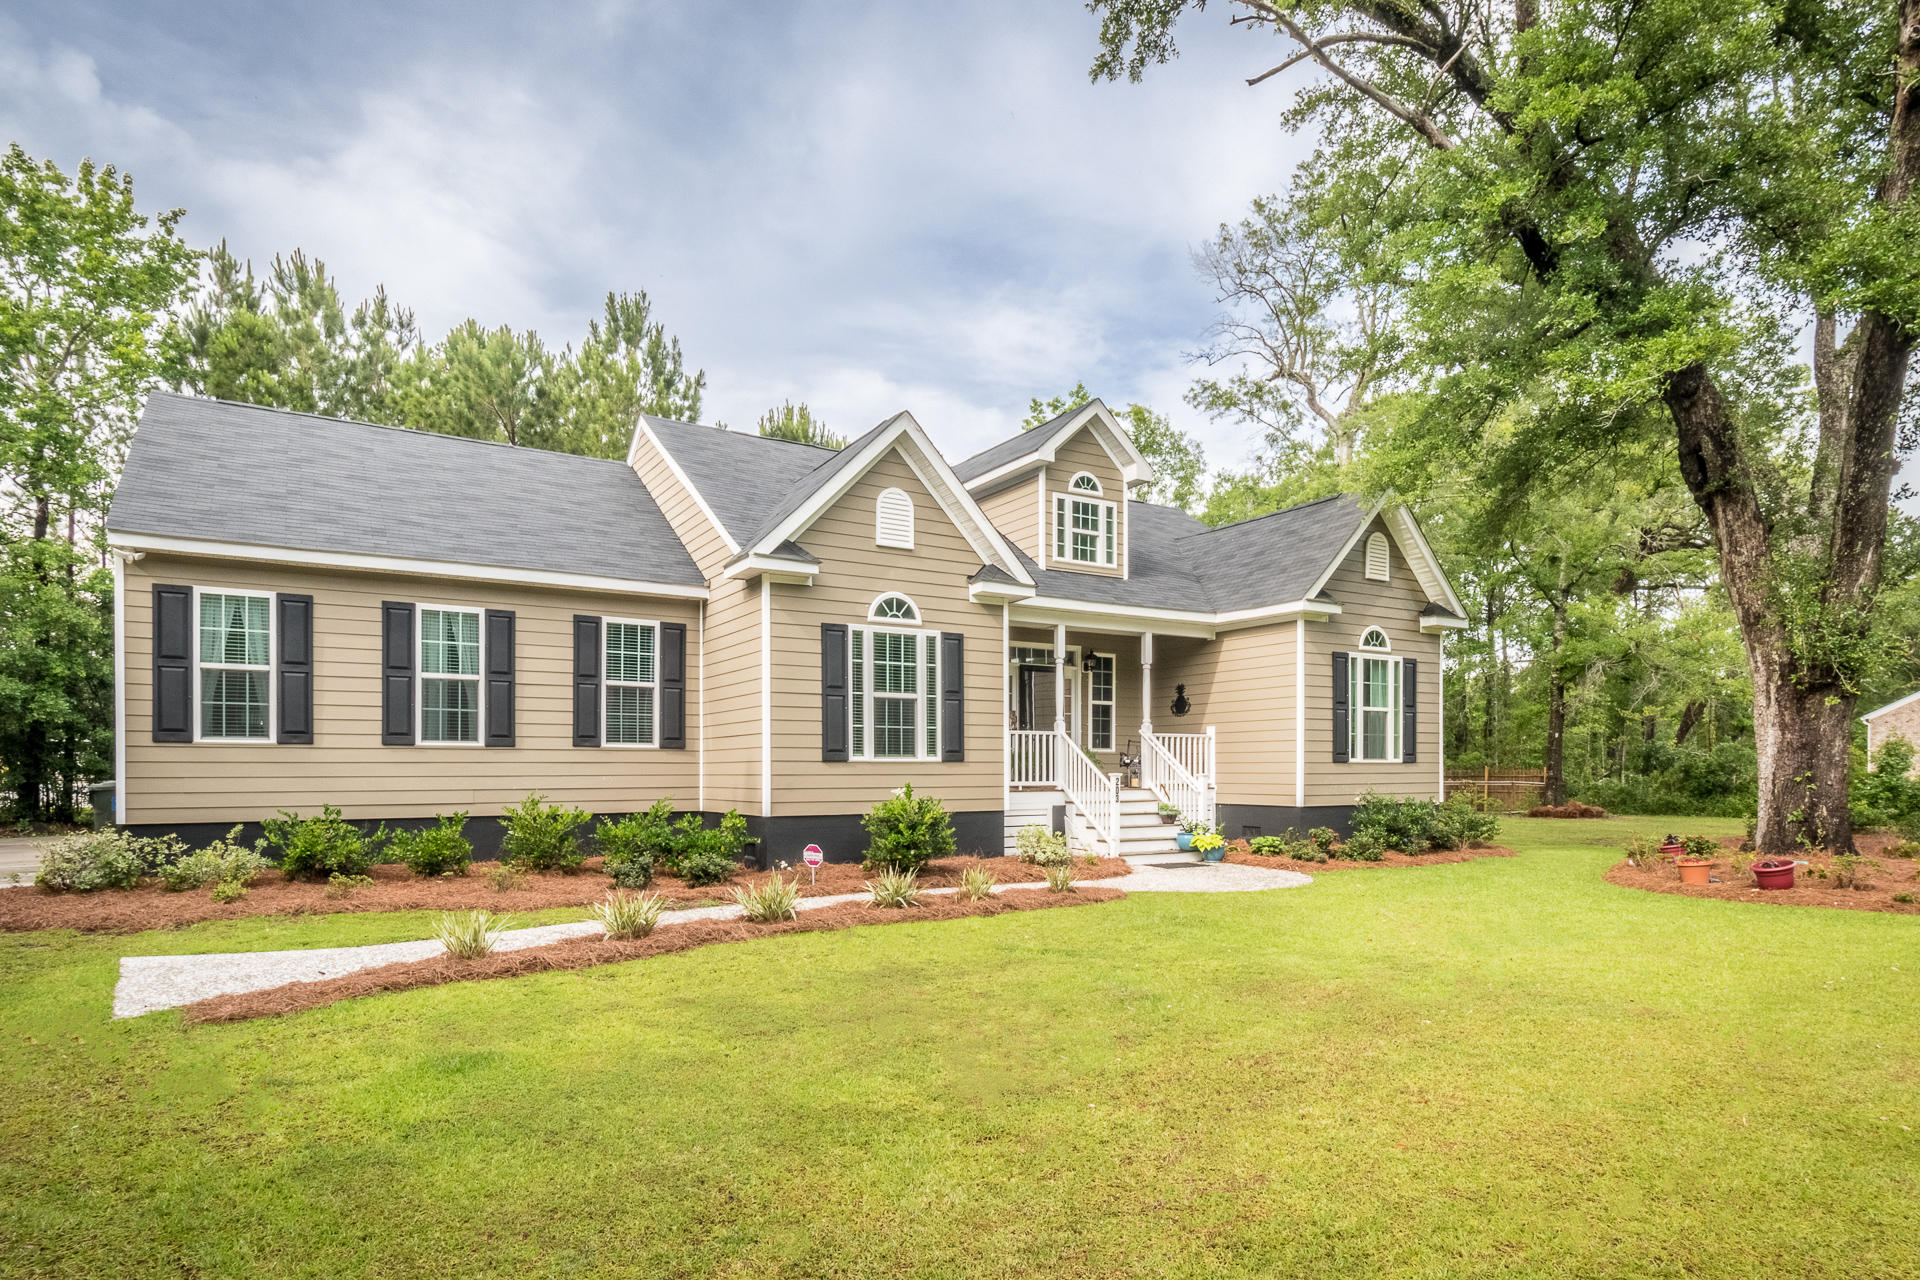 Cainhoy Landing Homes For Sale - 203 Ferry Point, Charleston, SC - 27